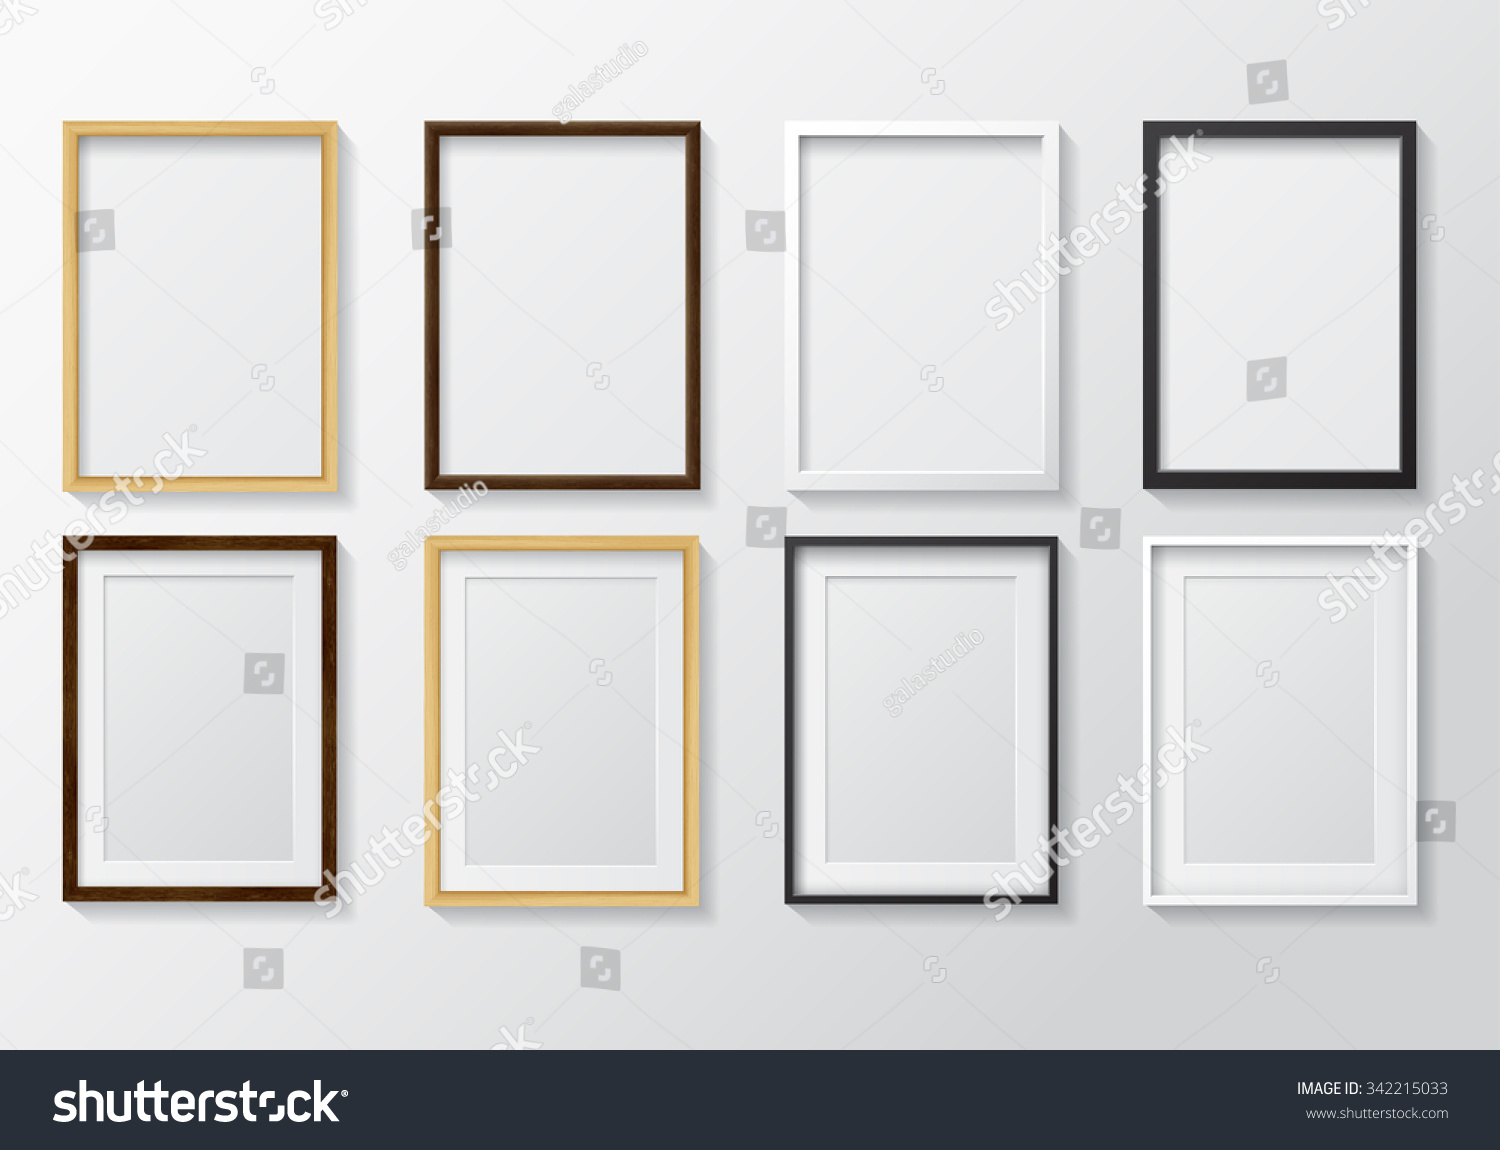 Set of Realistic Light Wood Blank Picture Frames and Dark Wood Blank Picture Frames hanging on a White Wall from the FrontWhite and Black Blank Picture FramesDesign Template for Mock Up